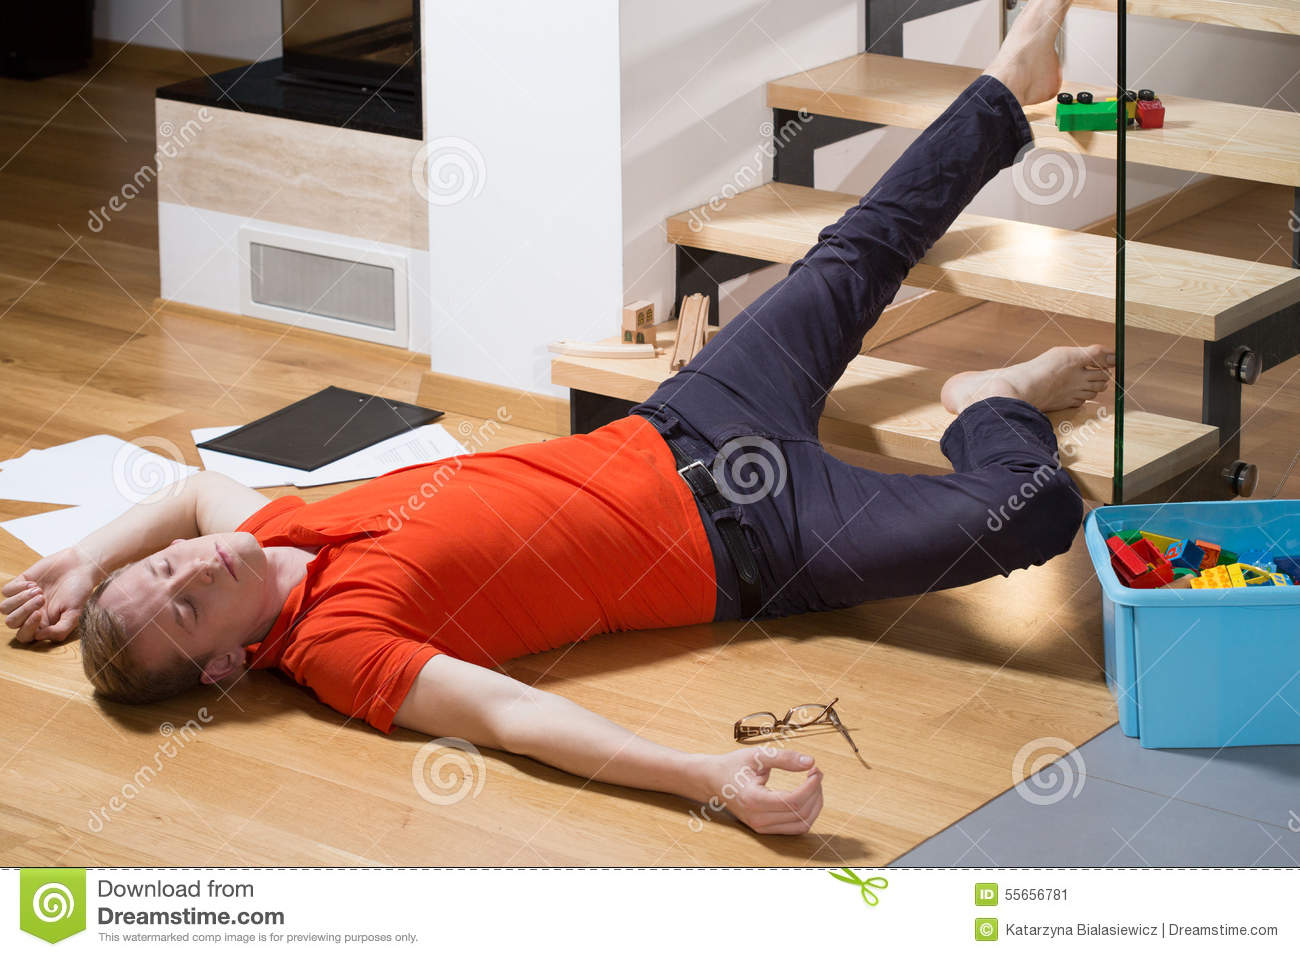 Animation For Beginners How To Animate A Character Running Cms 25730 as well Carrie Underwood Posts New Photo After Gruesome Accident 1202744023 together with Adult Son Msnbcs Joe Scarborough Fractures Skull Fall besides The Most  mon Causes Of Eye Injuries In The U S also Stock Photo Young Man Fell Down Stairs His Home Image55656781. on people falling down stairs